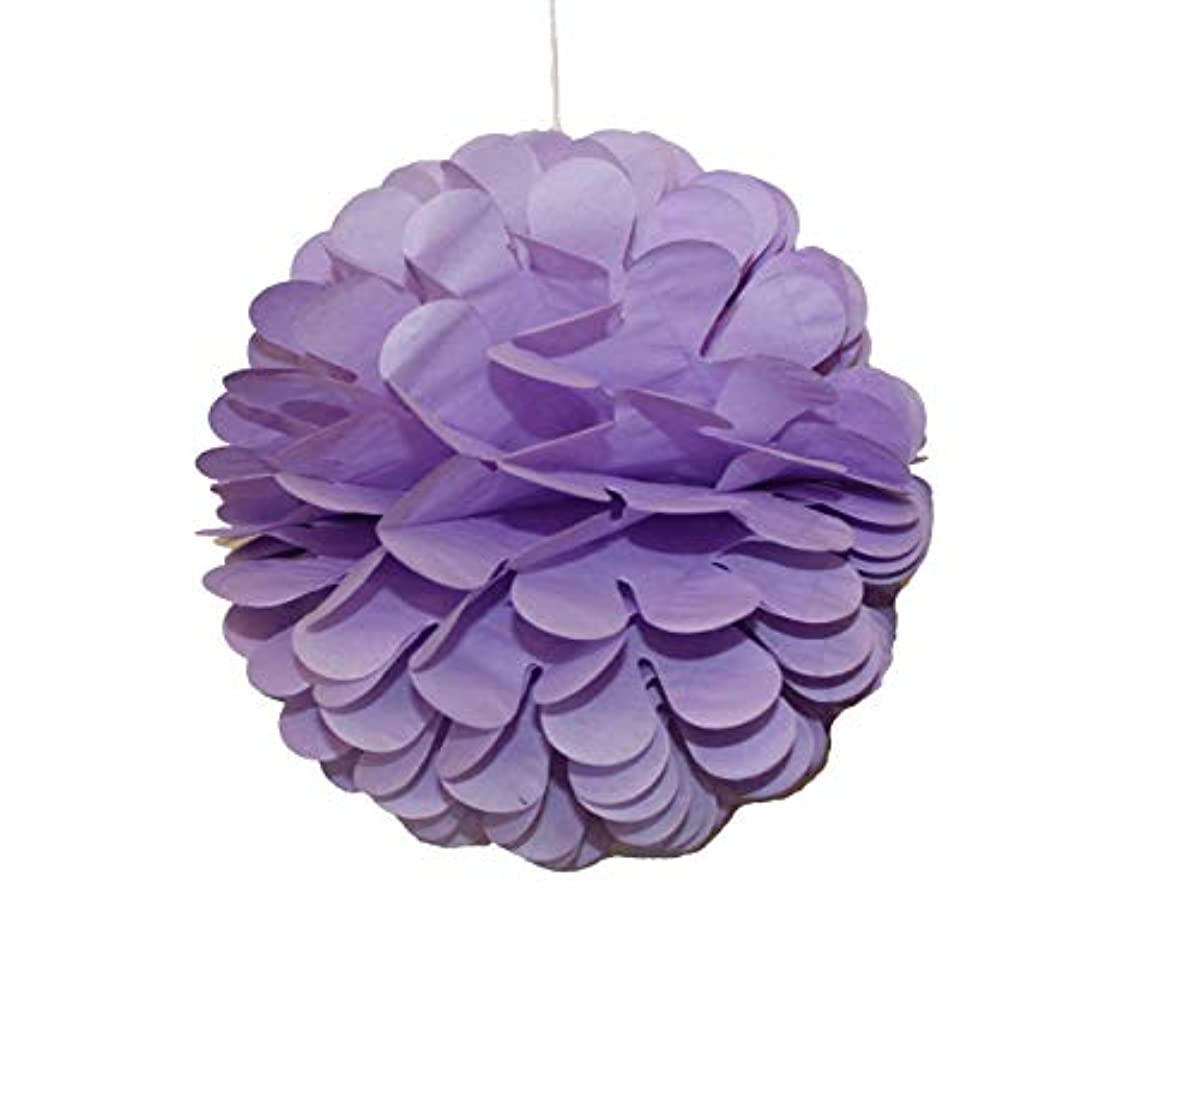 Dailygo 10Pcs 8 inch Party Honeycomb Balls Art Hanging Pom Poms Tissue Paper Balls Wall Backdrop Decoration Party Design Flower Balls Party Wedding Birthday Nursery Home Baby Shower Decor (Purple)